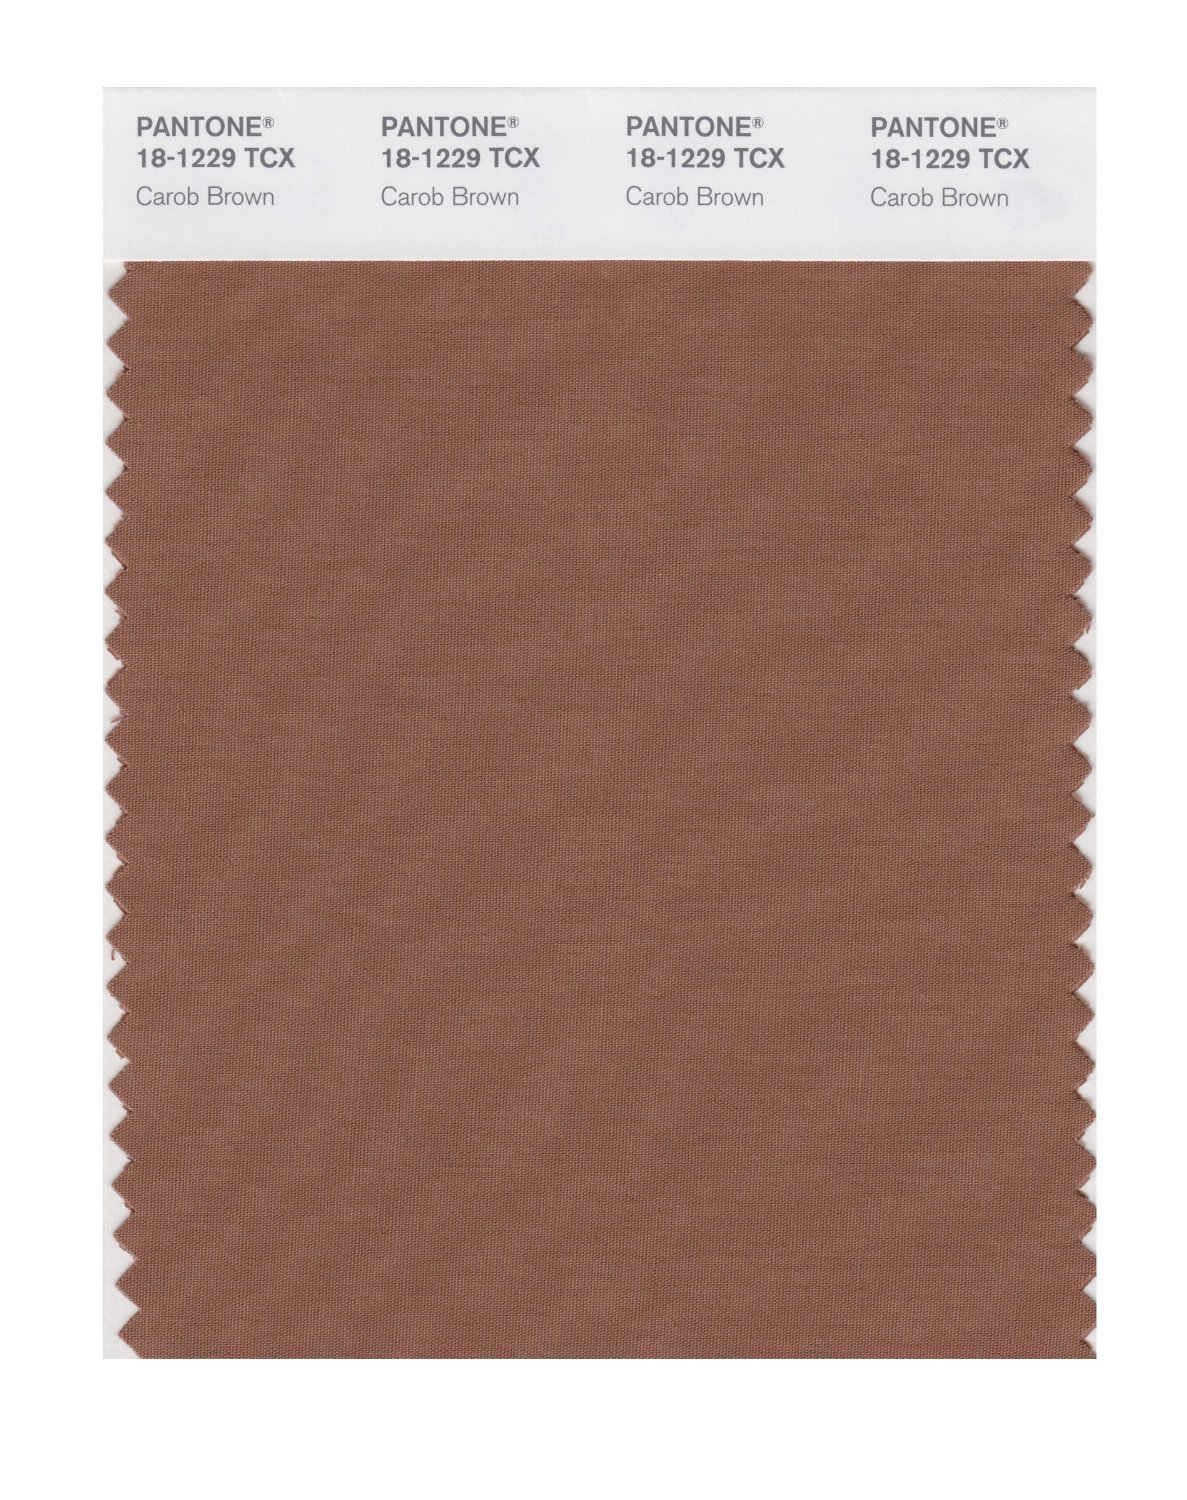 Pantone Smart Swatch 18-1229 Carob Brown